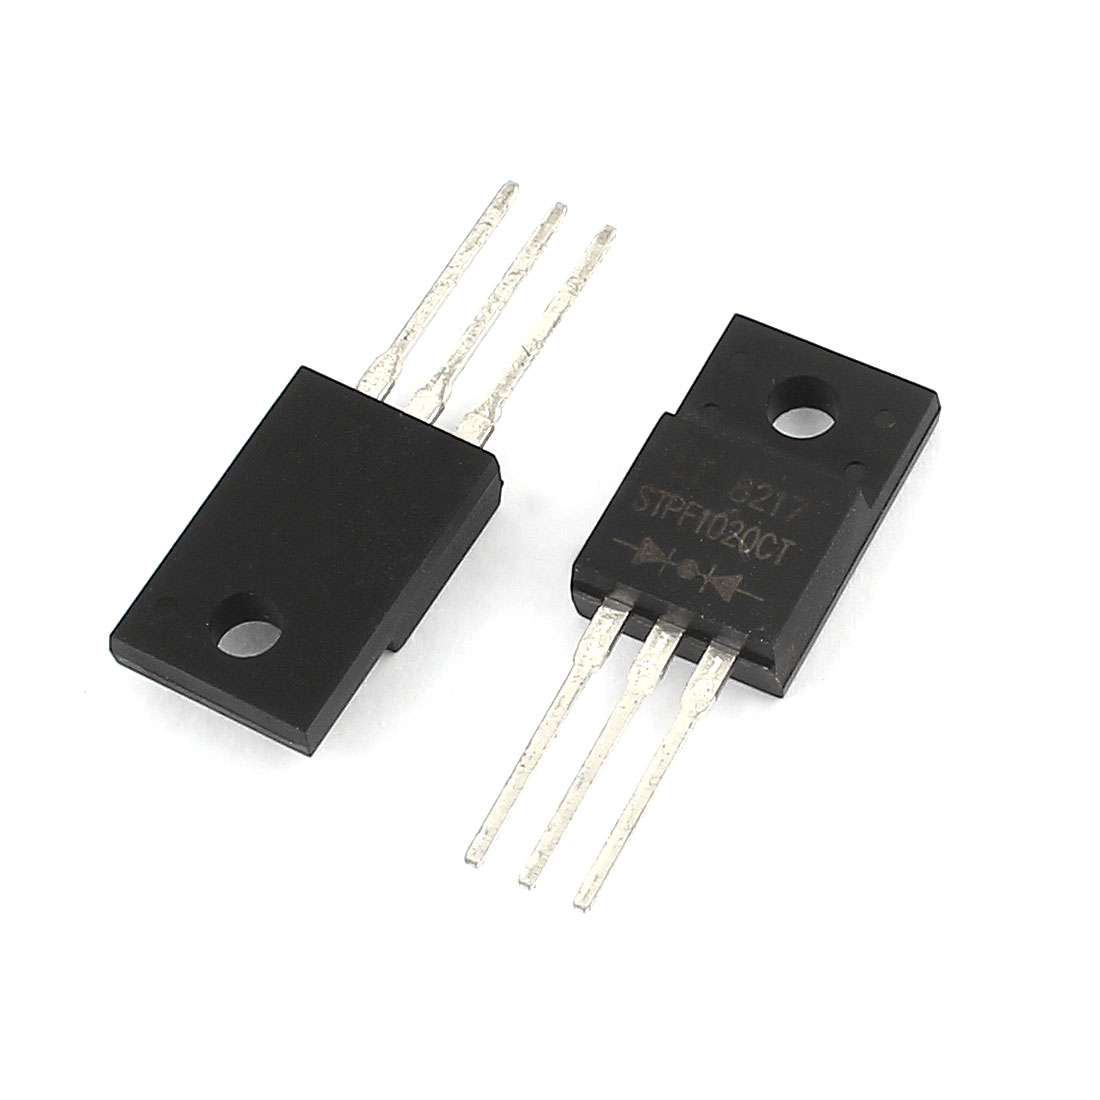 2Pcs STPF1020CT Electronic 3 Terminals Through Hole Mounting Ultra-fast Recovery Rectifier Diode